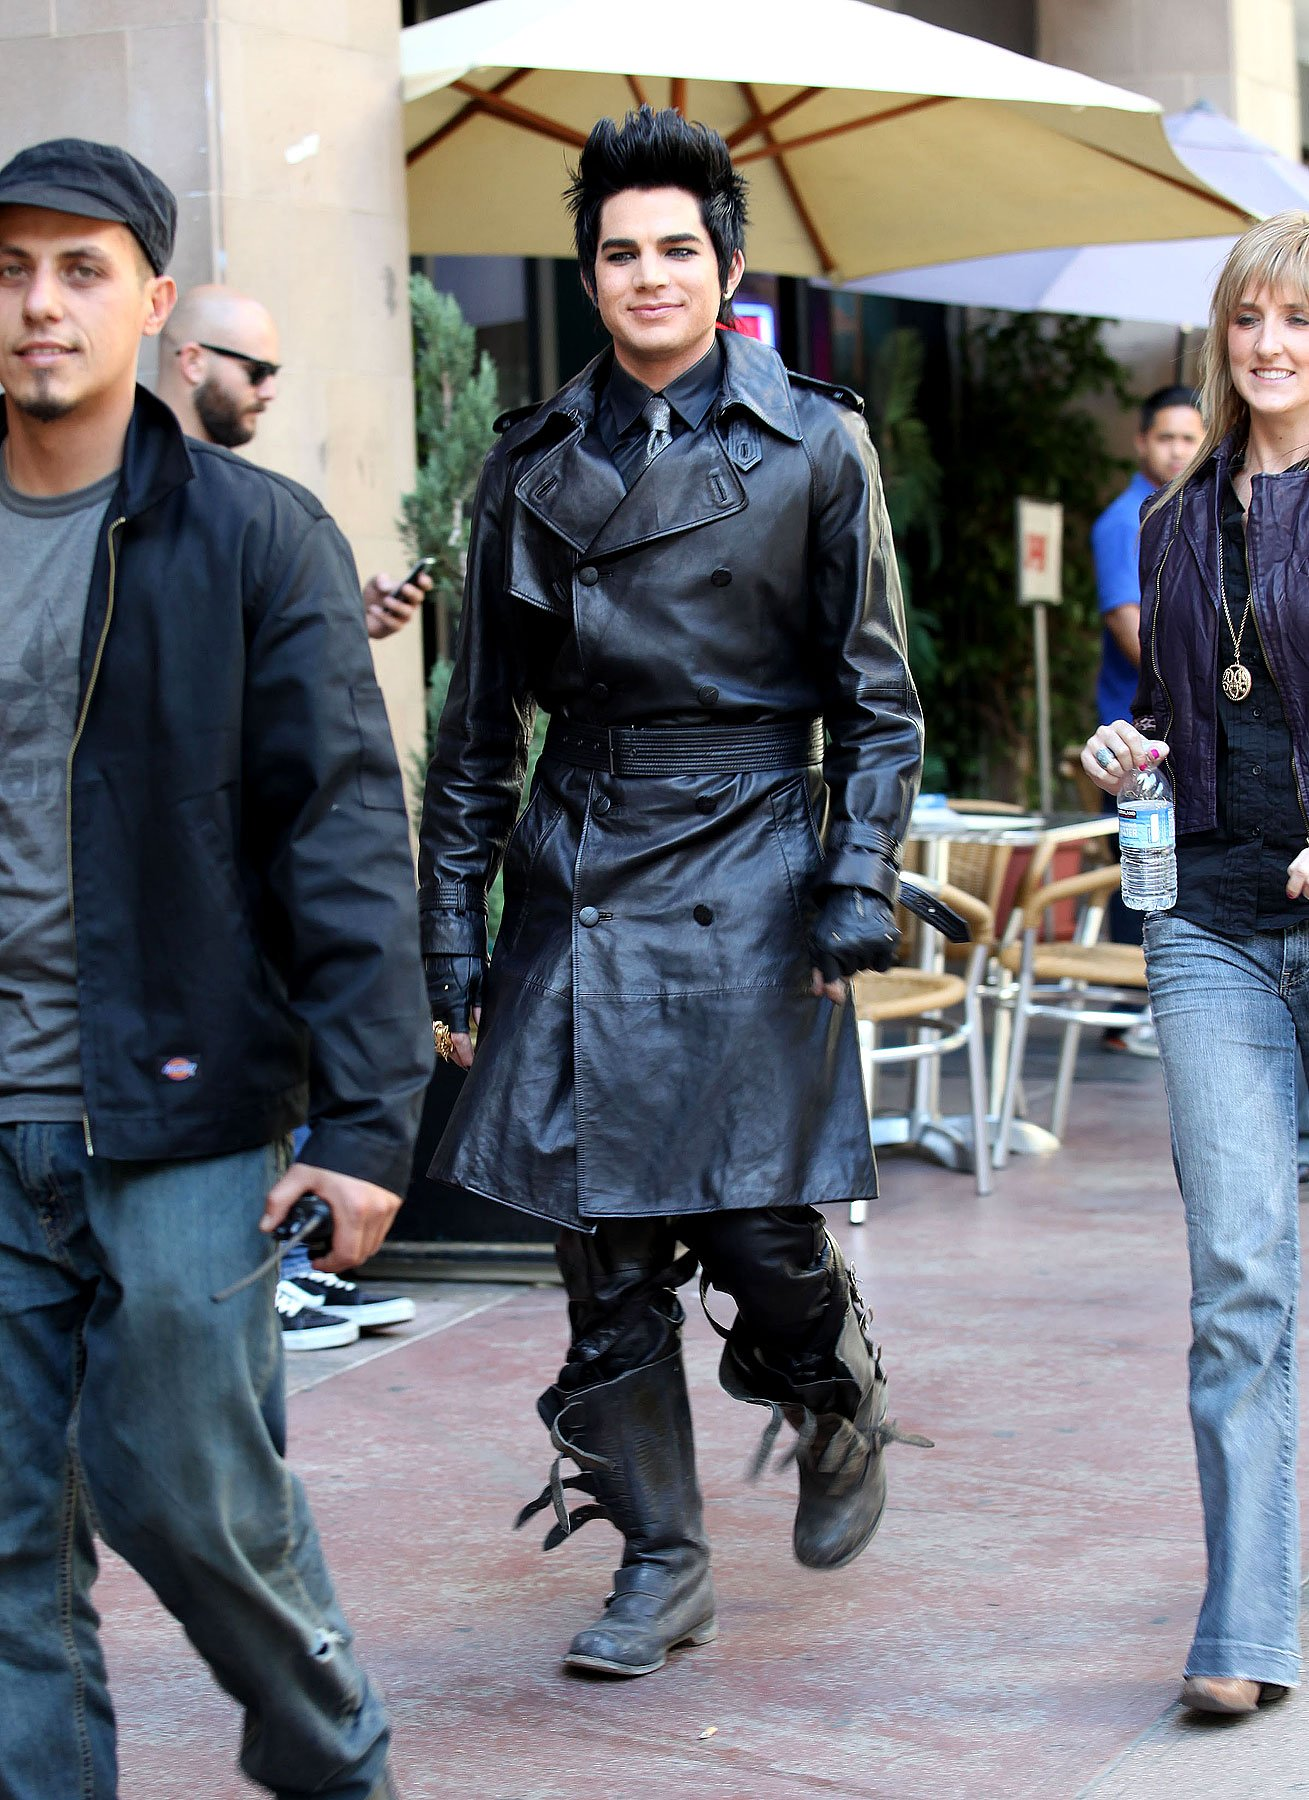 PHOTO GALLERY: Adam Lambert's Music Video Shoot